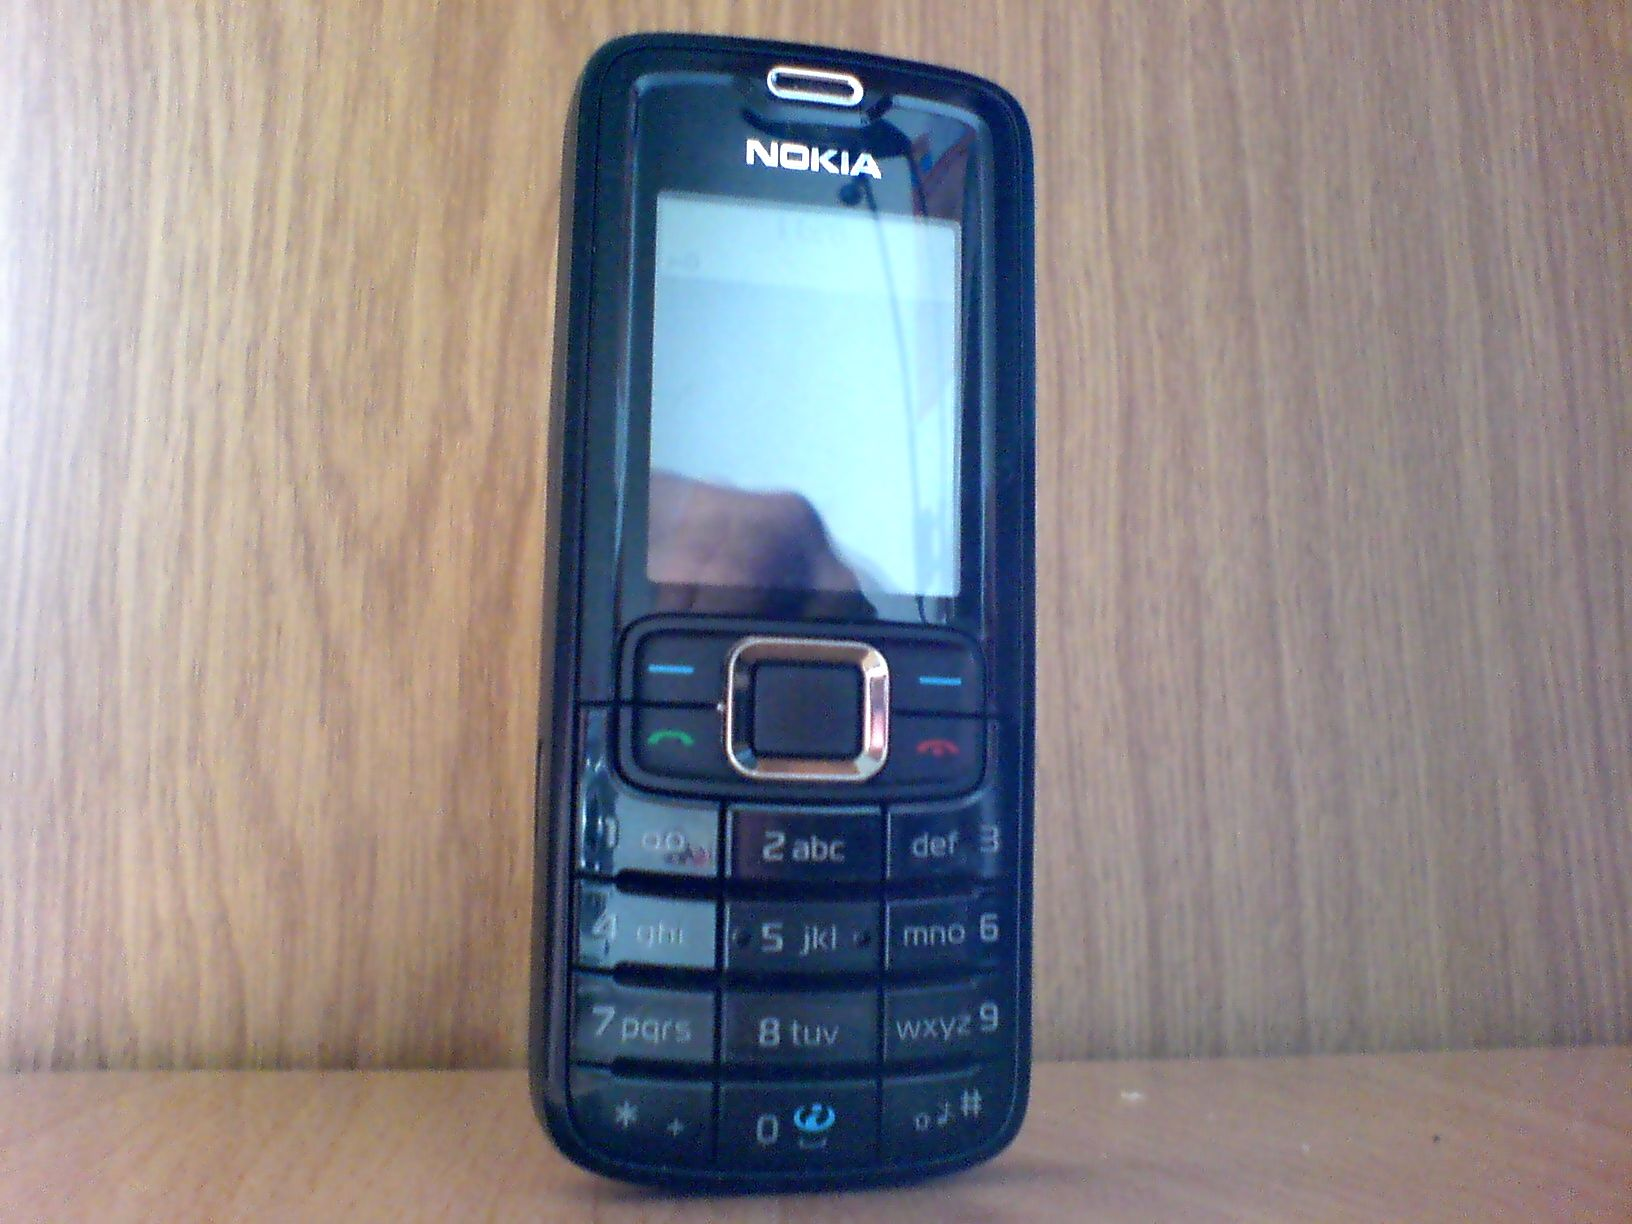 File:Nokia 3110c.png - Wikimedia Commons